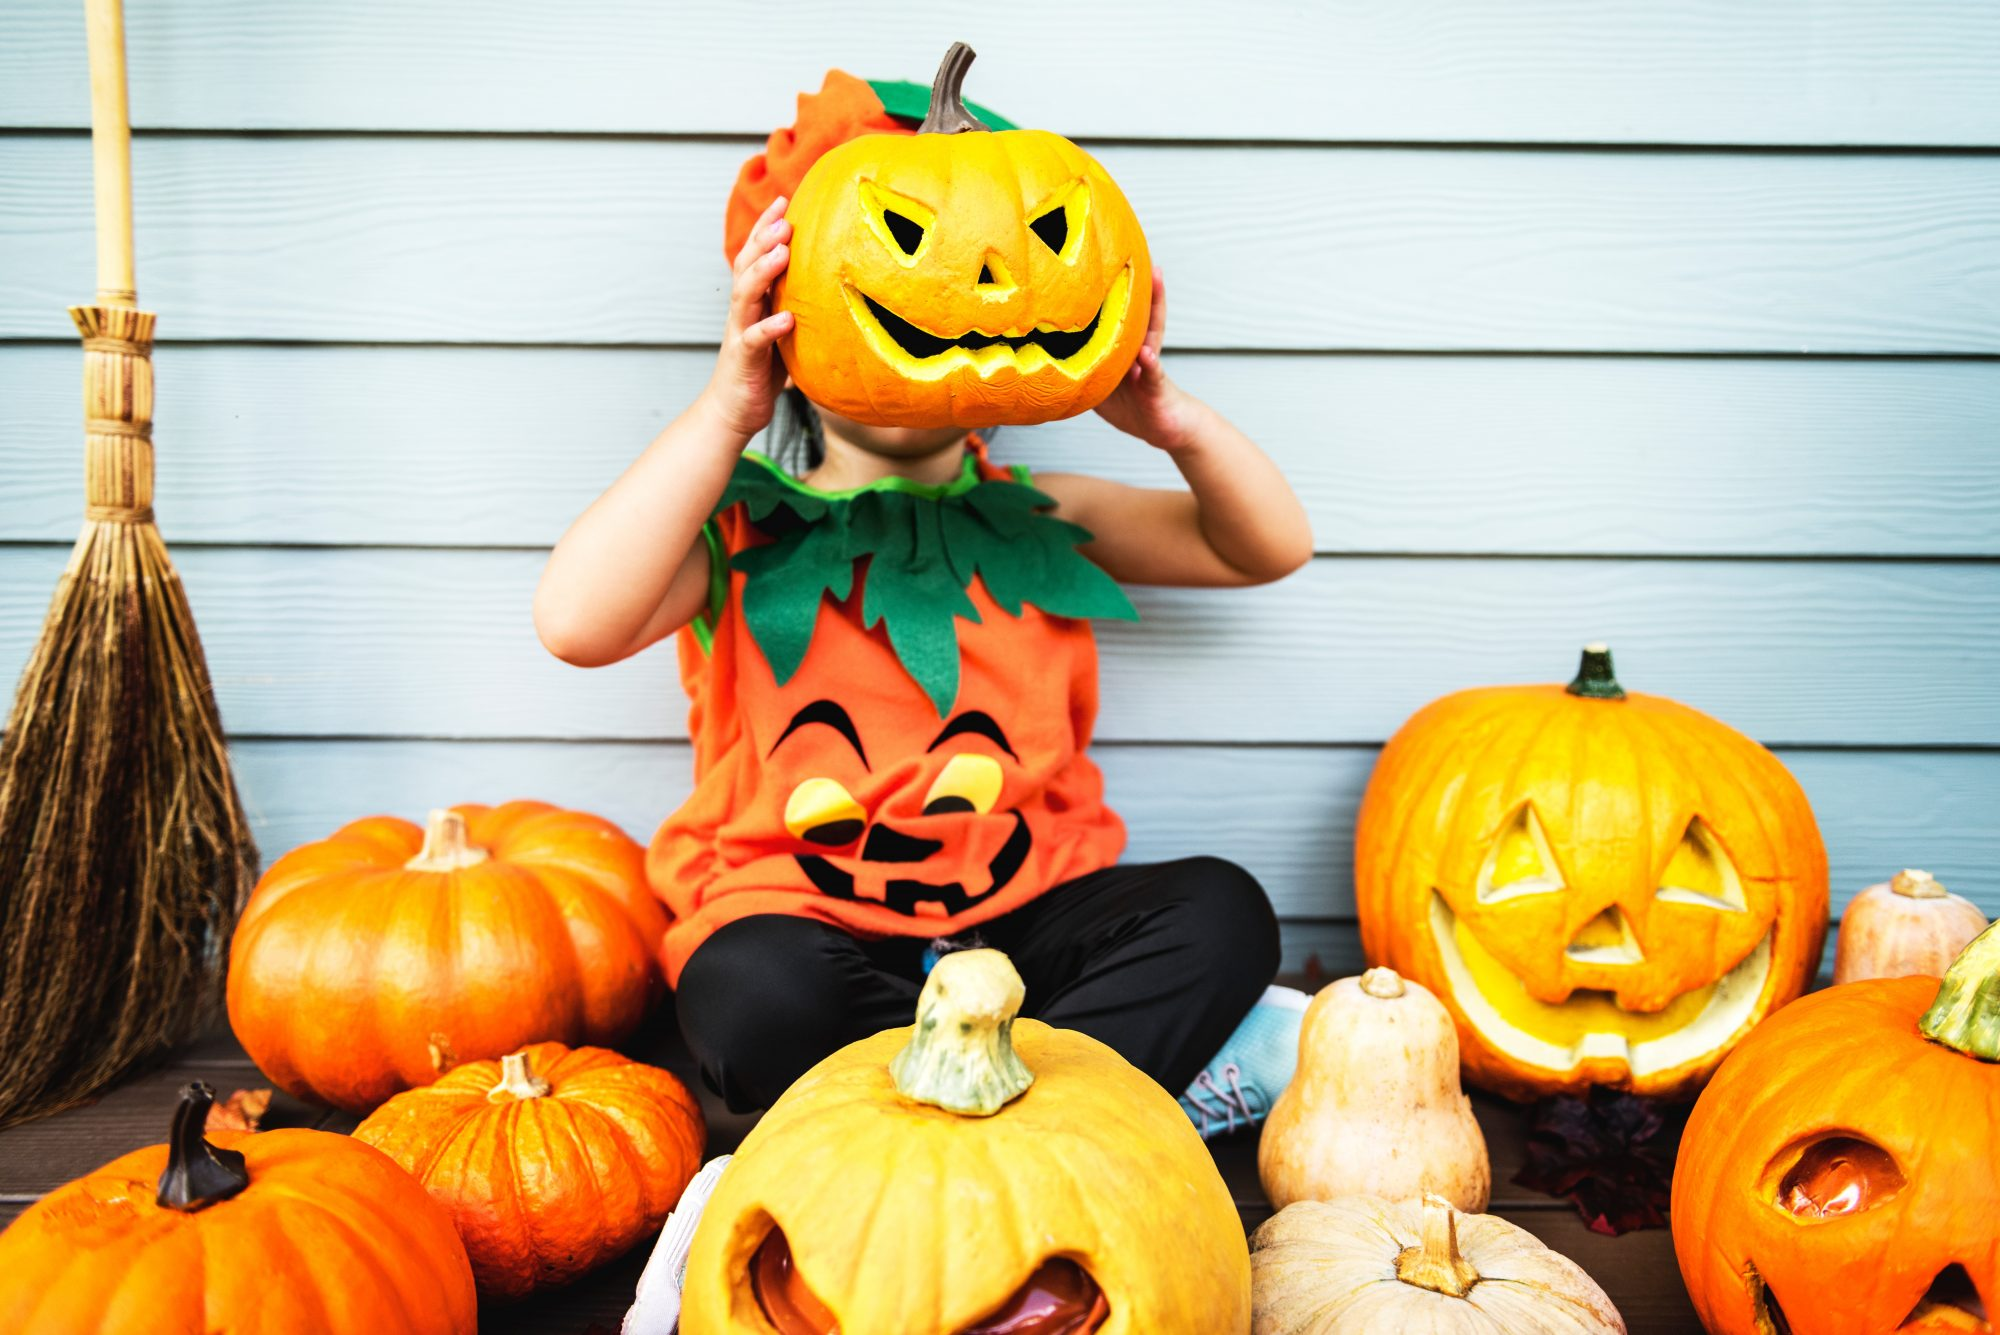 Child with carved pumpkins playing